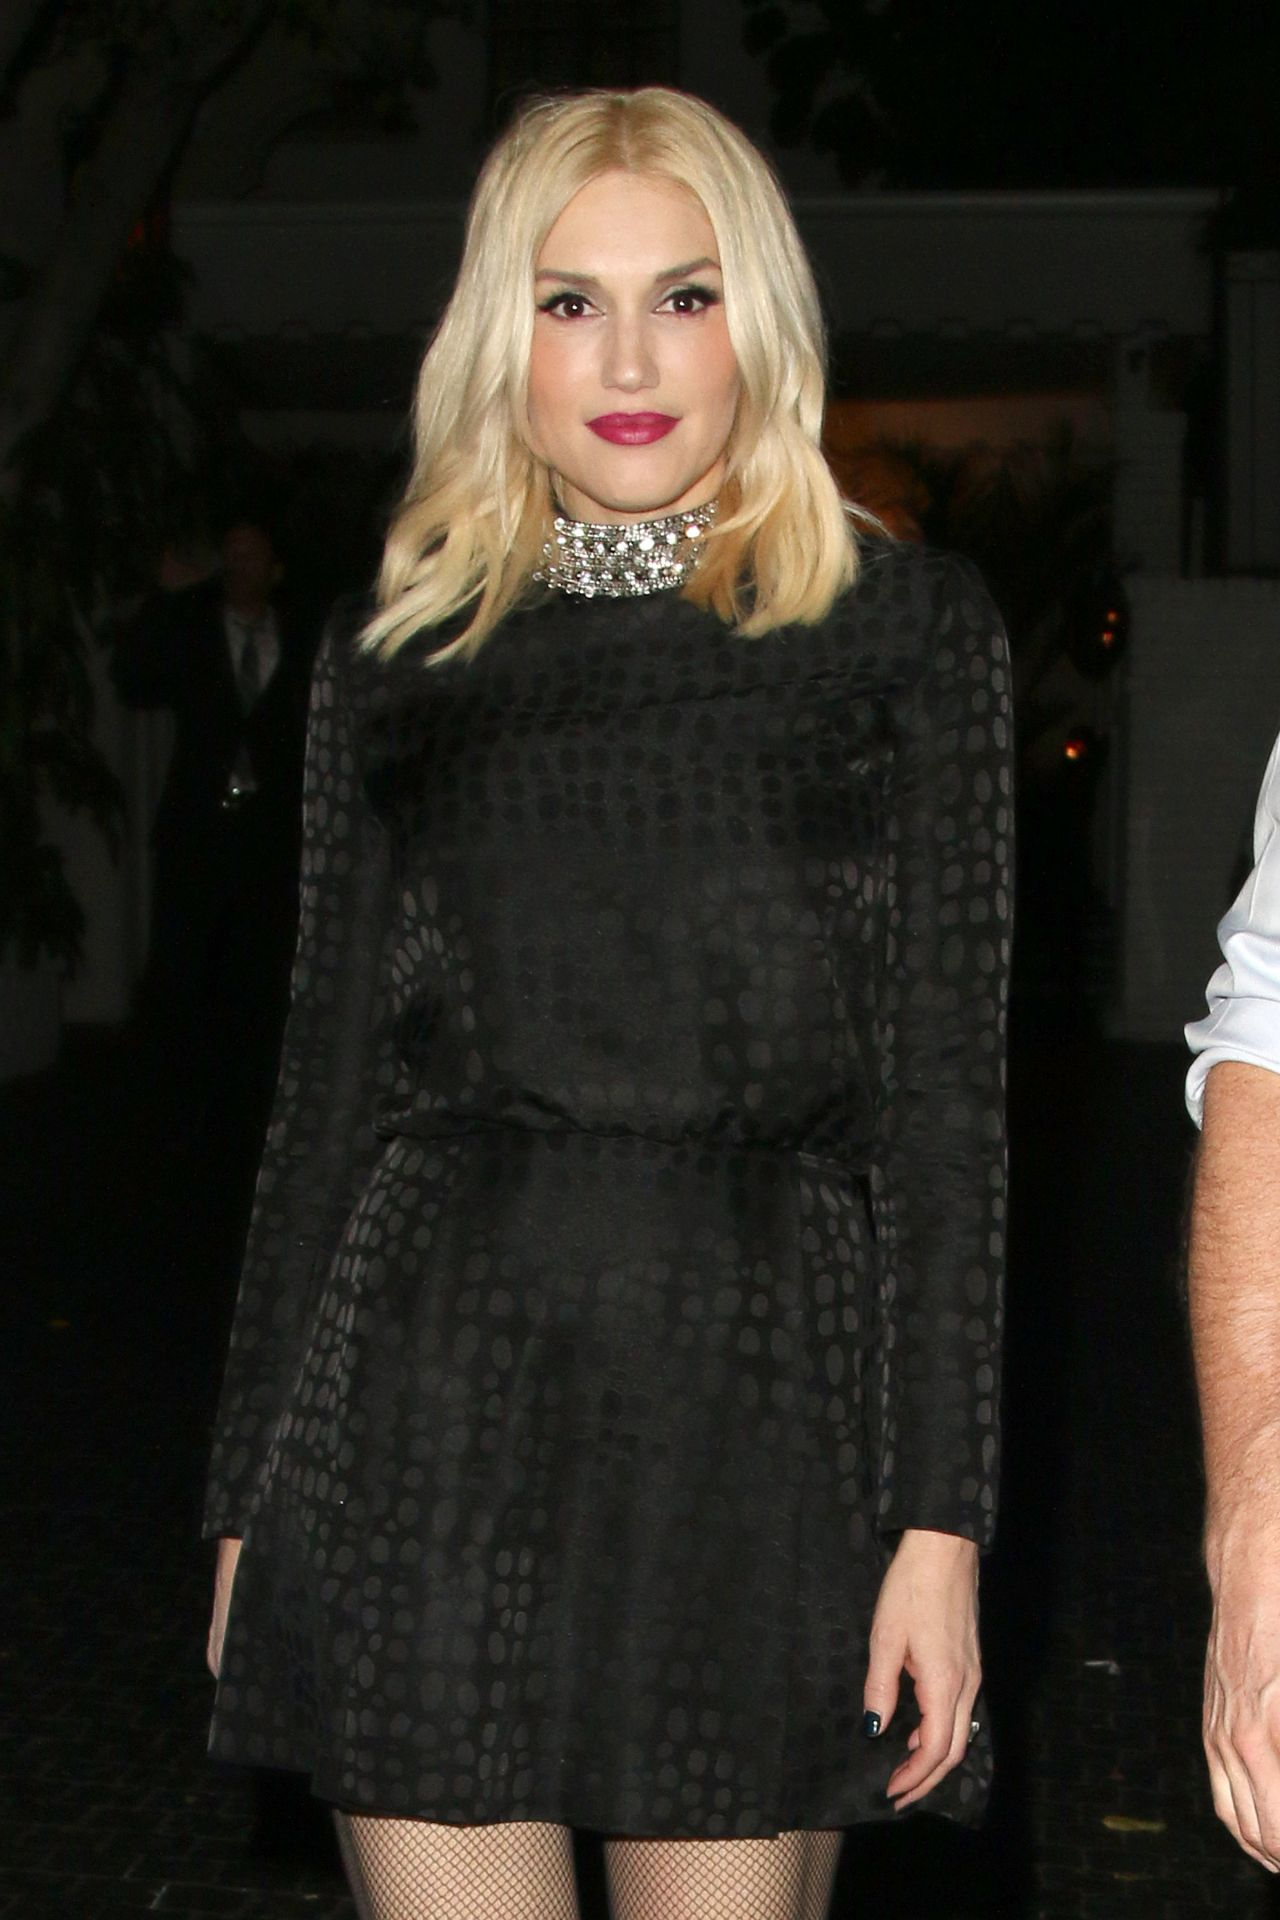 Gwen Stefani Night Out Style - Chateau Marmont in Los Angeles – May 2014